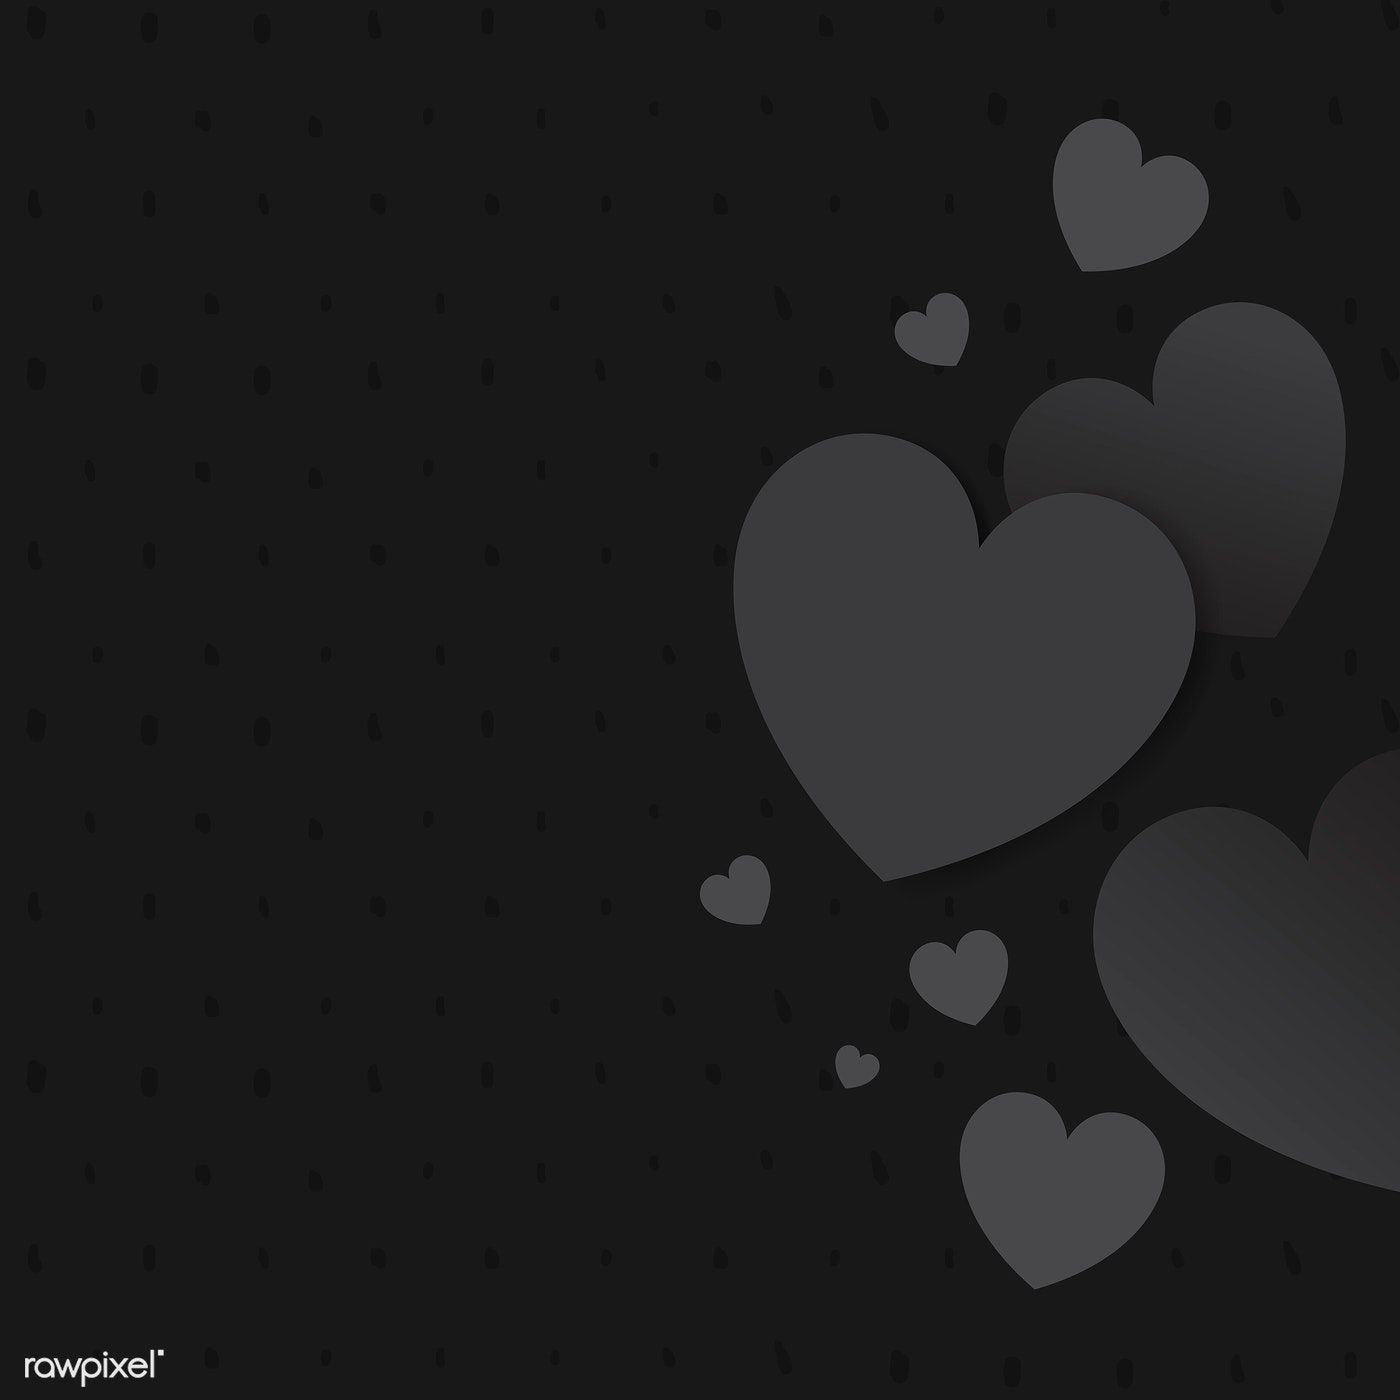 Gray Hearts Background Design Vector Free Image By Rawpixel Com